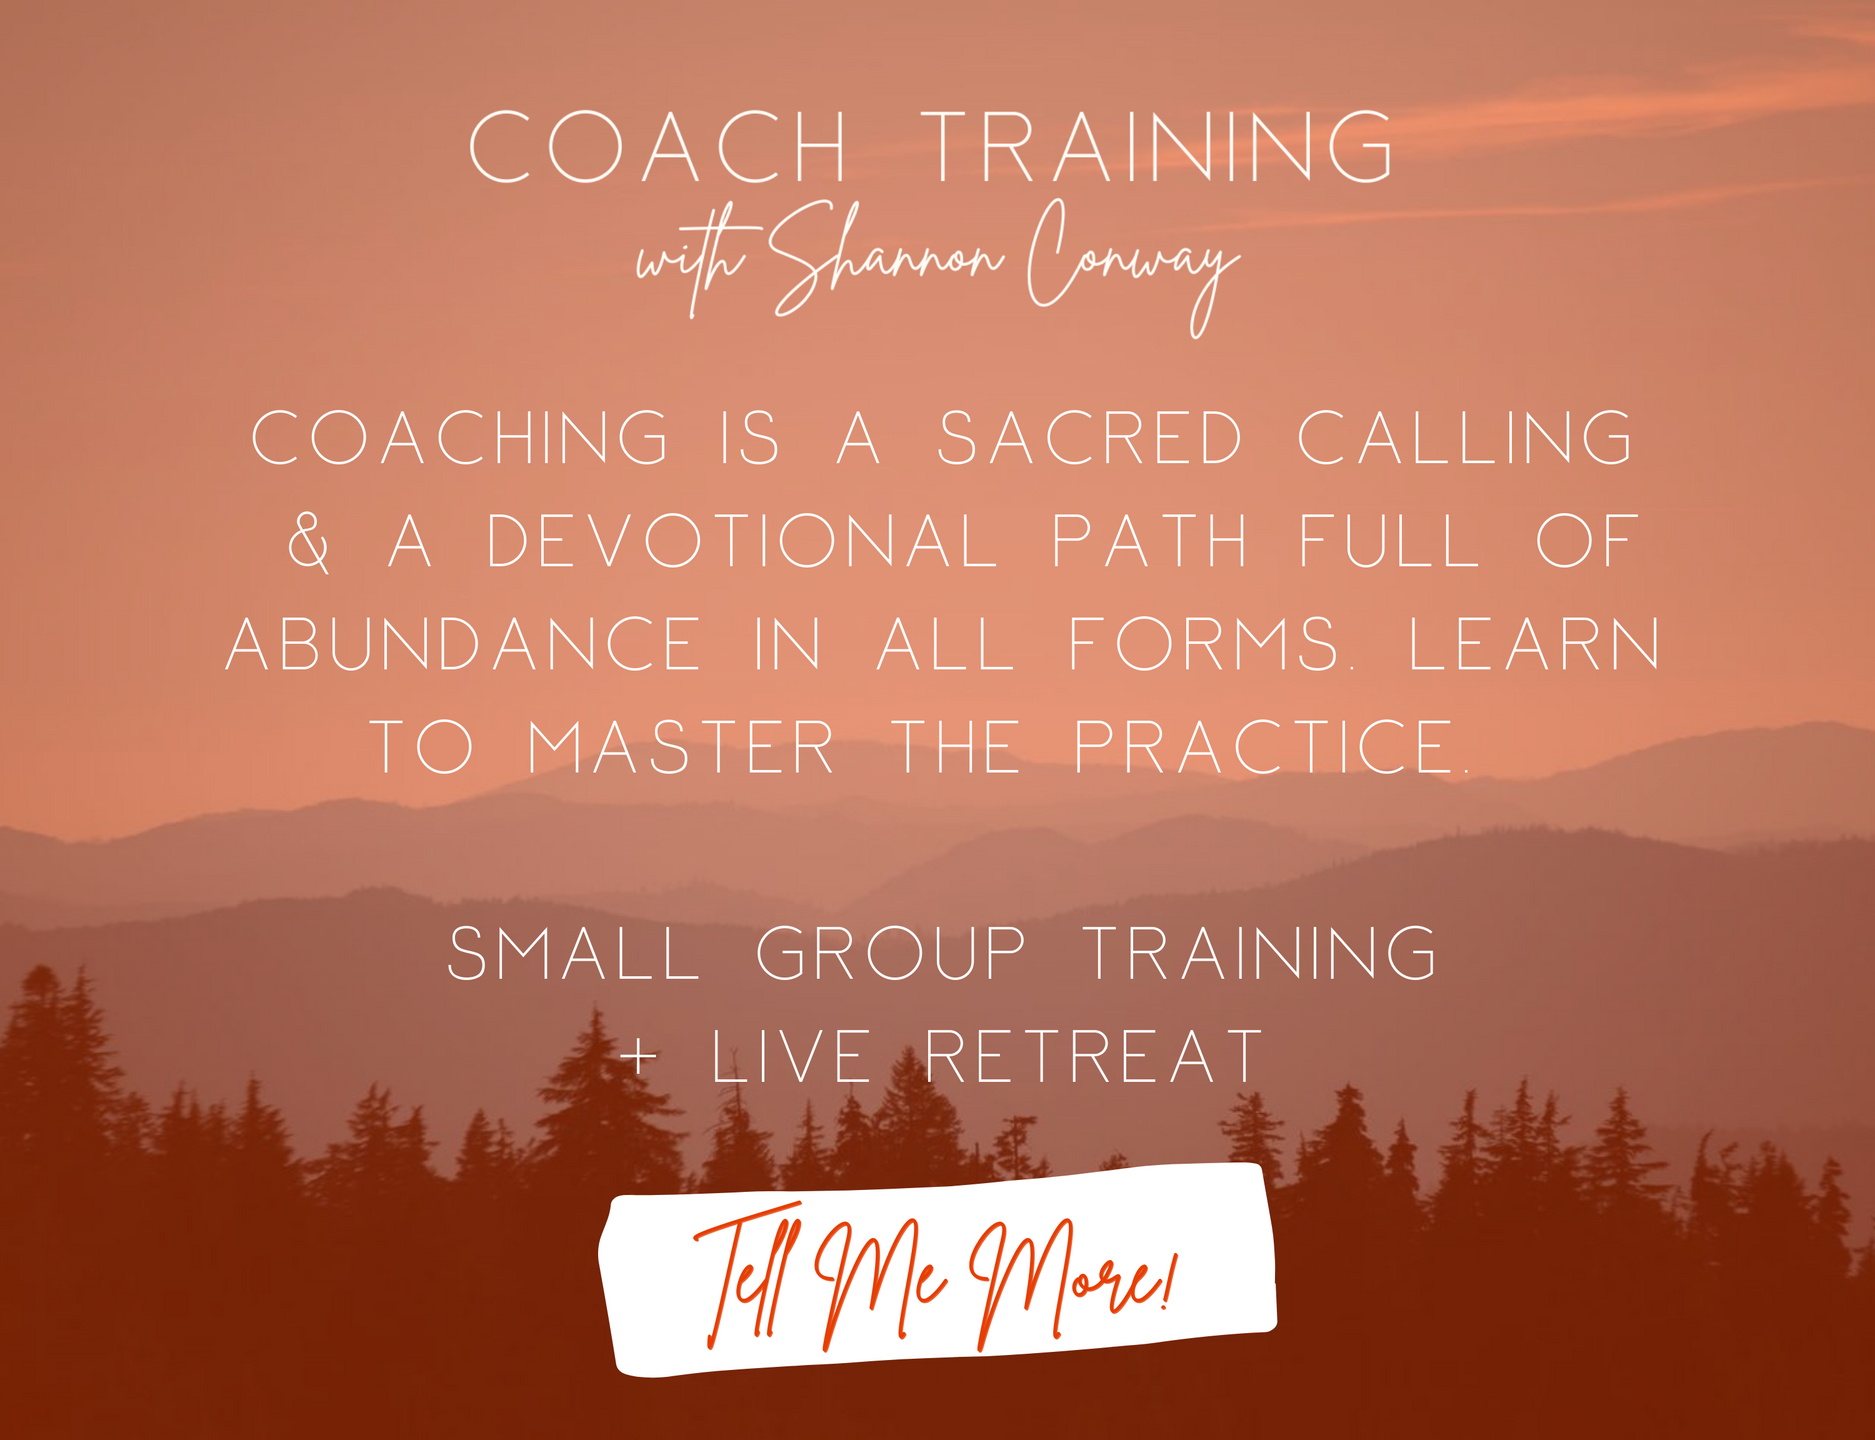 Coach Training with Shannon Conway: Coaching is a sacred calling and a devotional path full of abundance in all forms. Learn to master the practice. Small Group Training and Live retreat. Tell Me More!